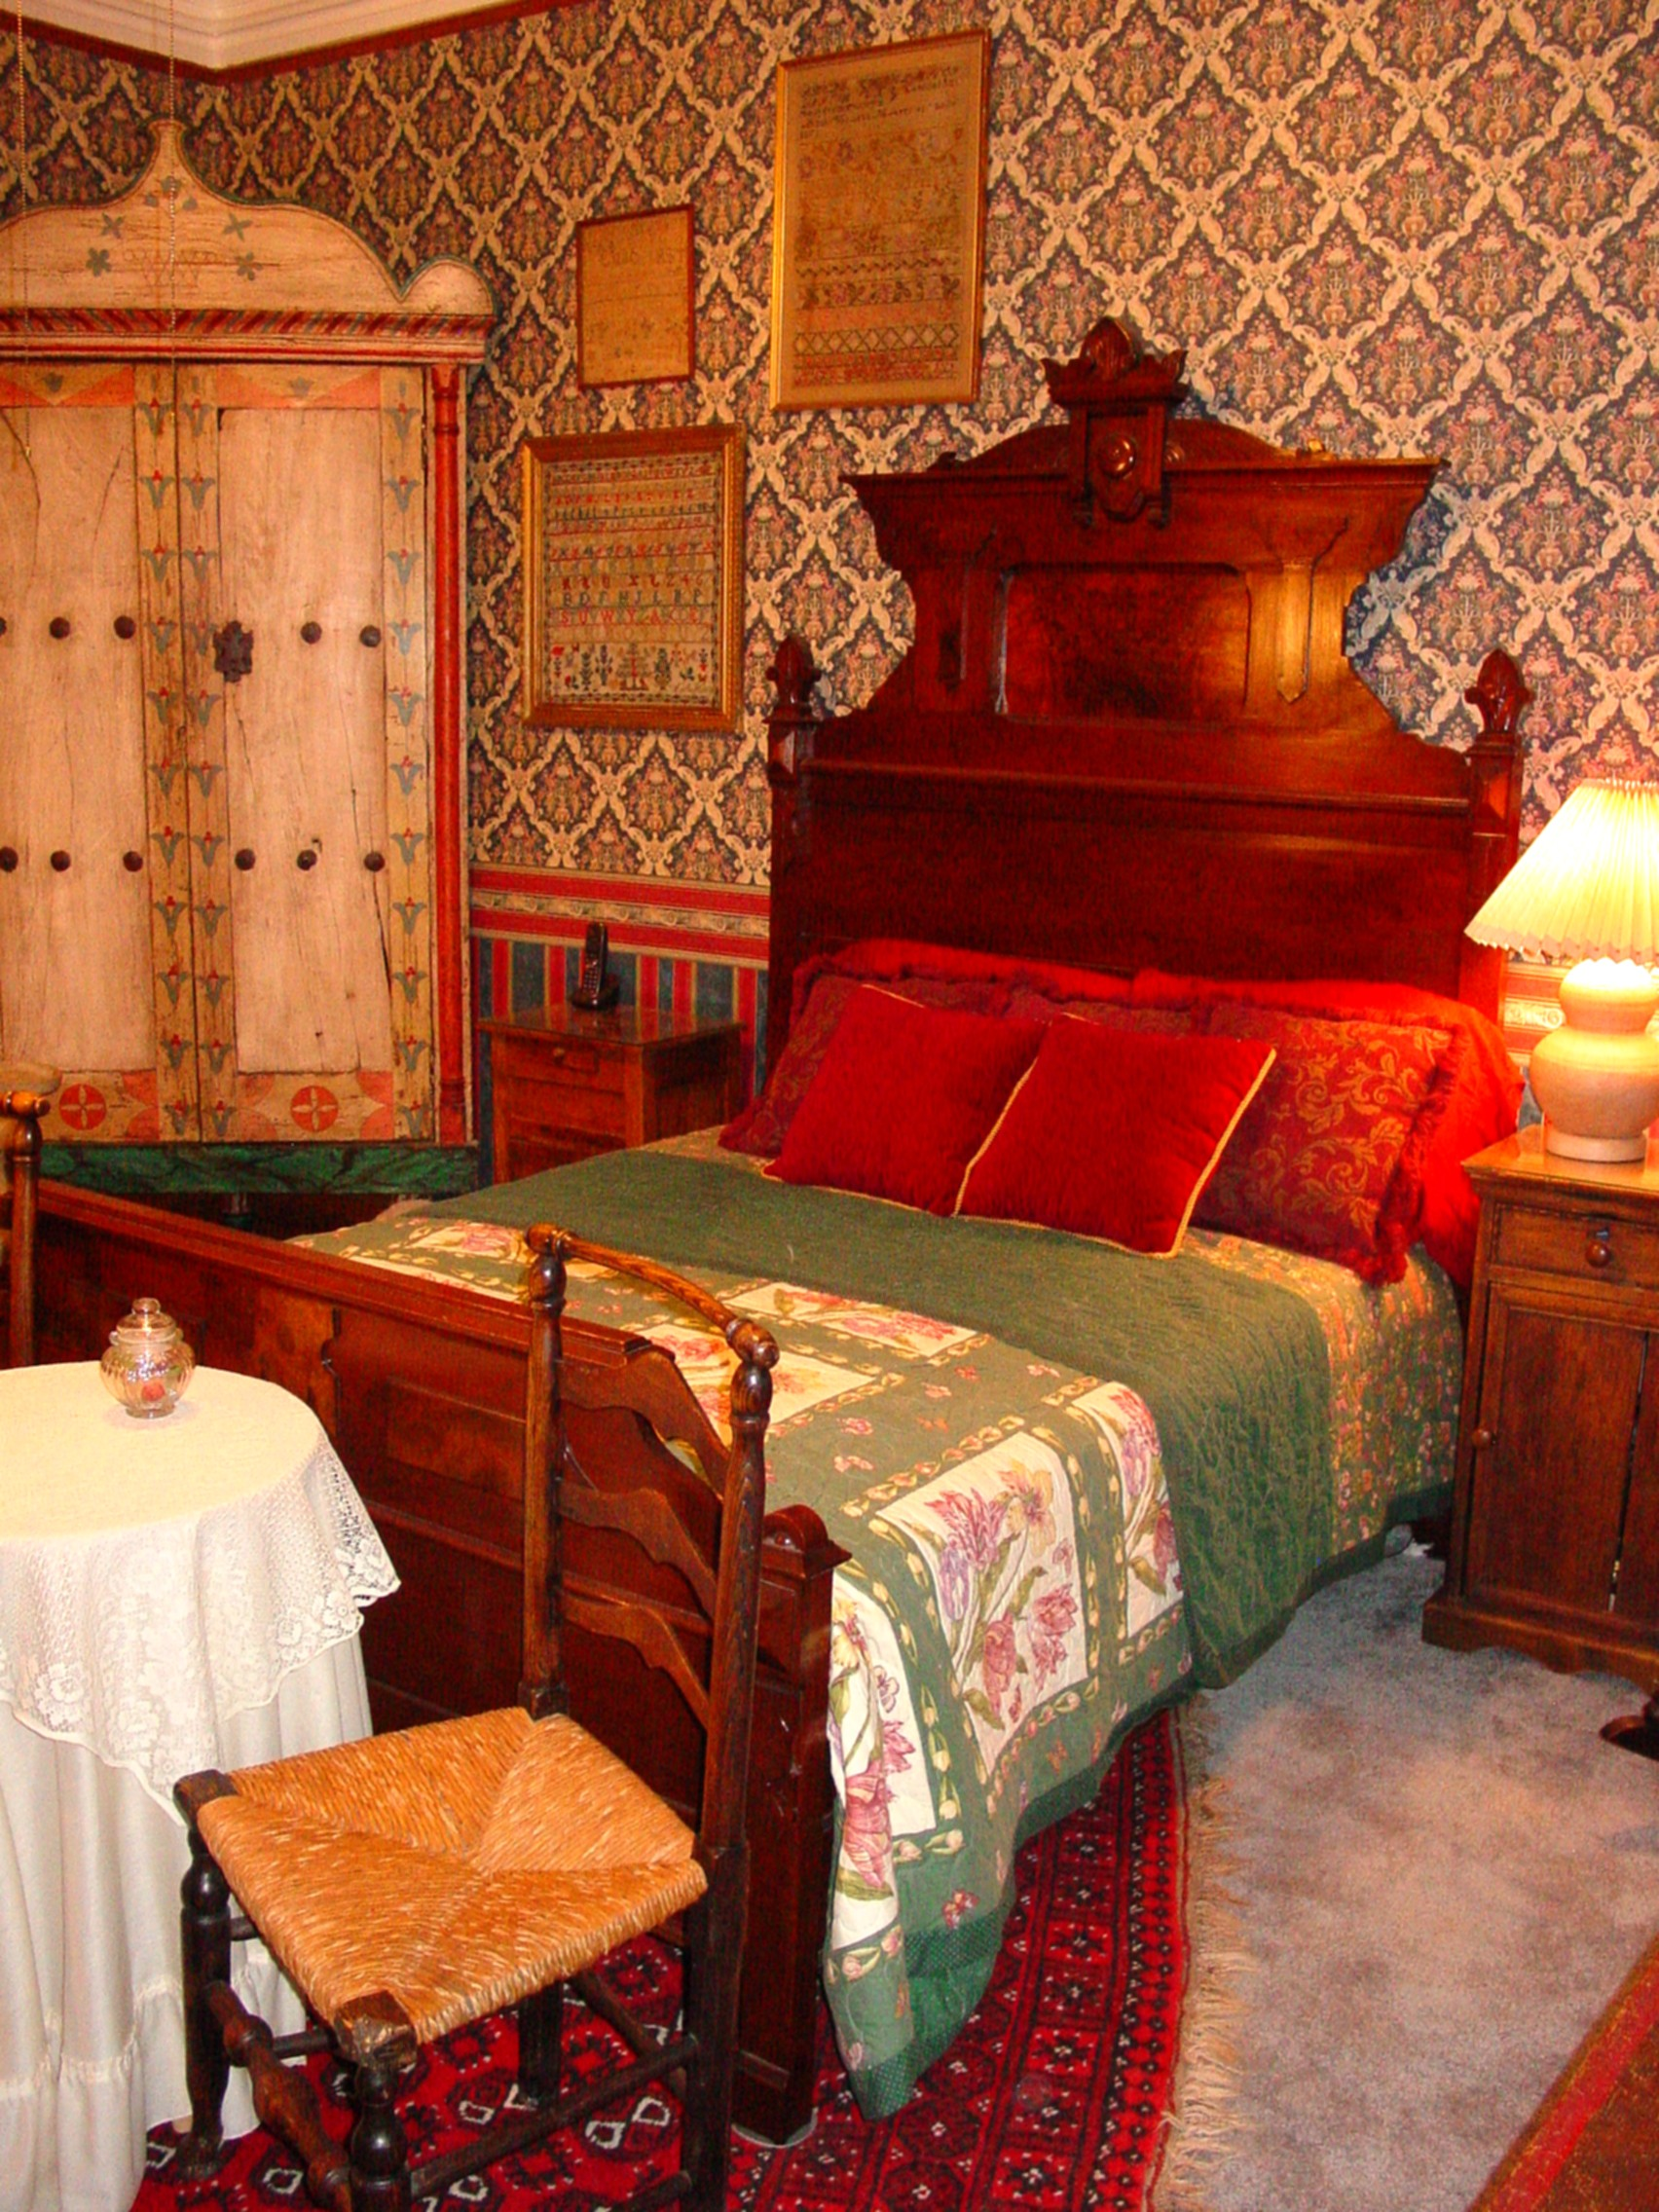 1860s Walnut Bed in Teal Room